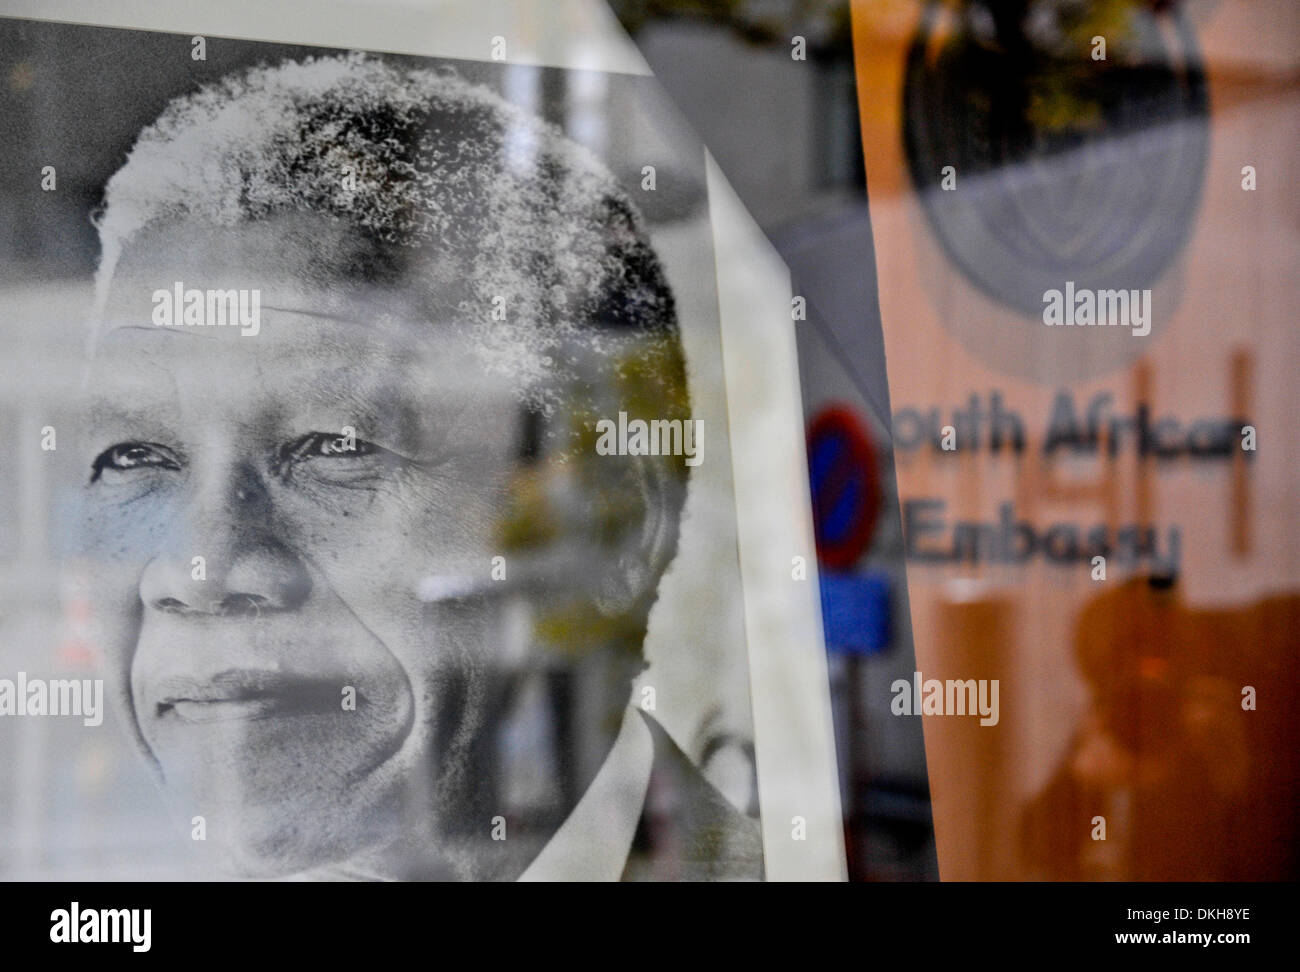 Brussels, Belgium. 6th December 2013. Phote taken on Dec 6, 2013 shows portrait of the late Nelson Mandela at the South African embassy in Brussels, capital of Belgium. Condolence messages are pouring in for the late former South African president from all over the world on Friday. (Xinhua/Ye Pingfan/Alamy Live News) - Stock Image